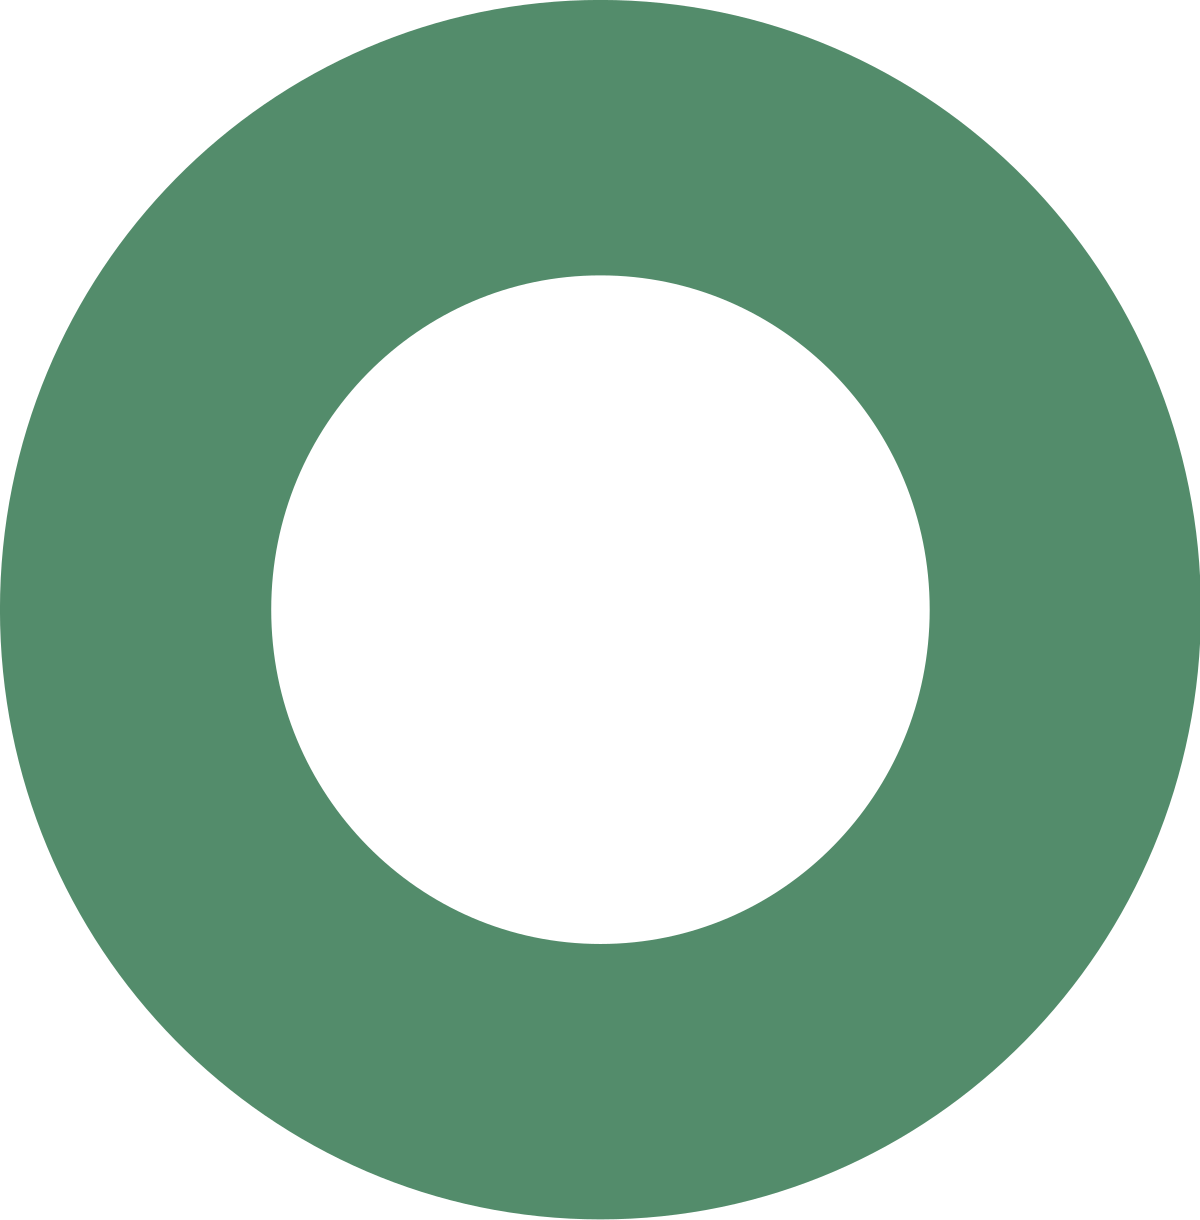 Green party uk wikipedia. Circle clipart greenery